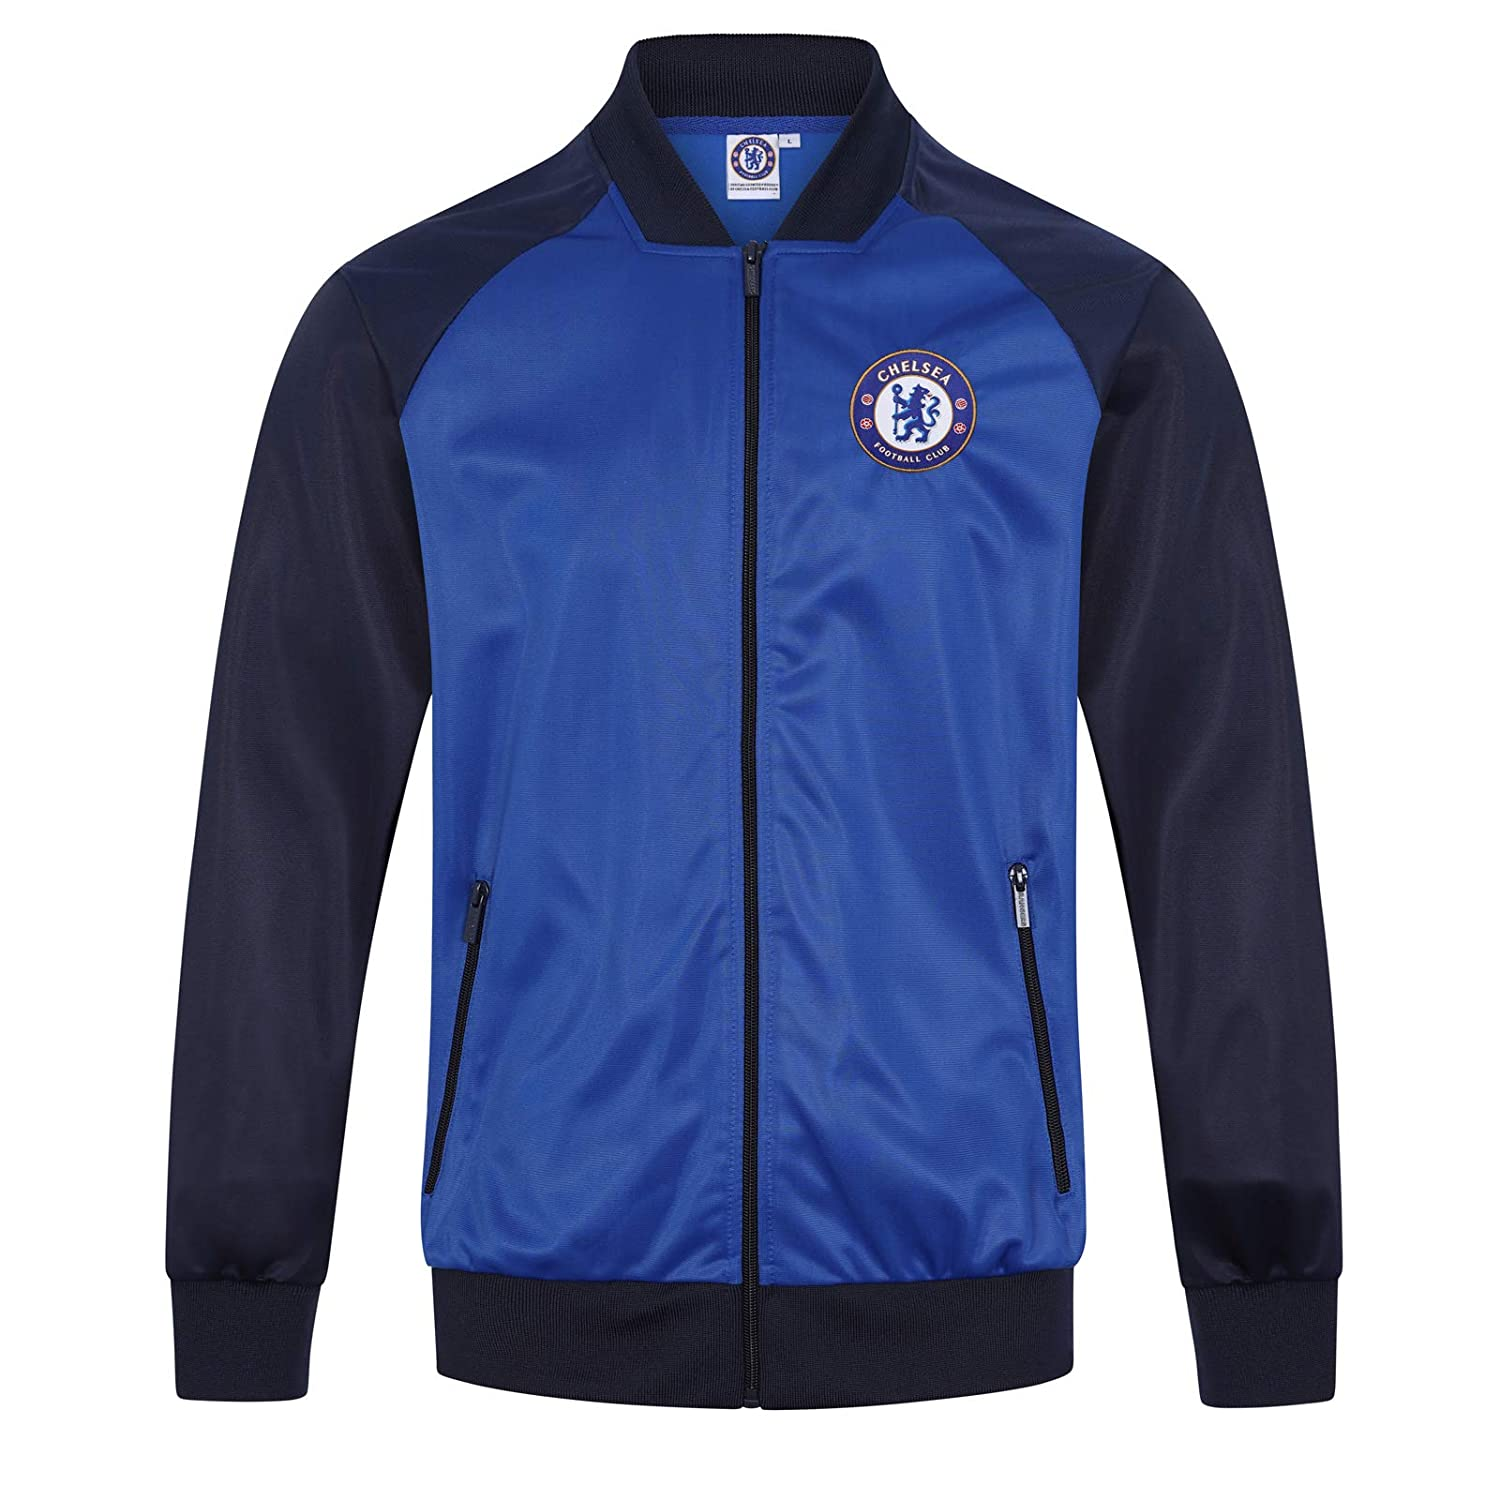 f076466c7 Chelsea Football Club Official Soccer Gift Mens Retro Track Top Jacket at  Amazon Men s Clothing store